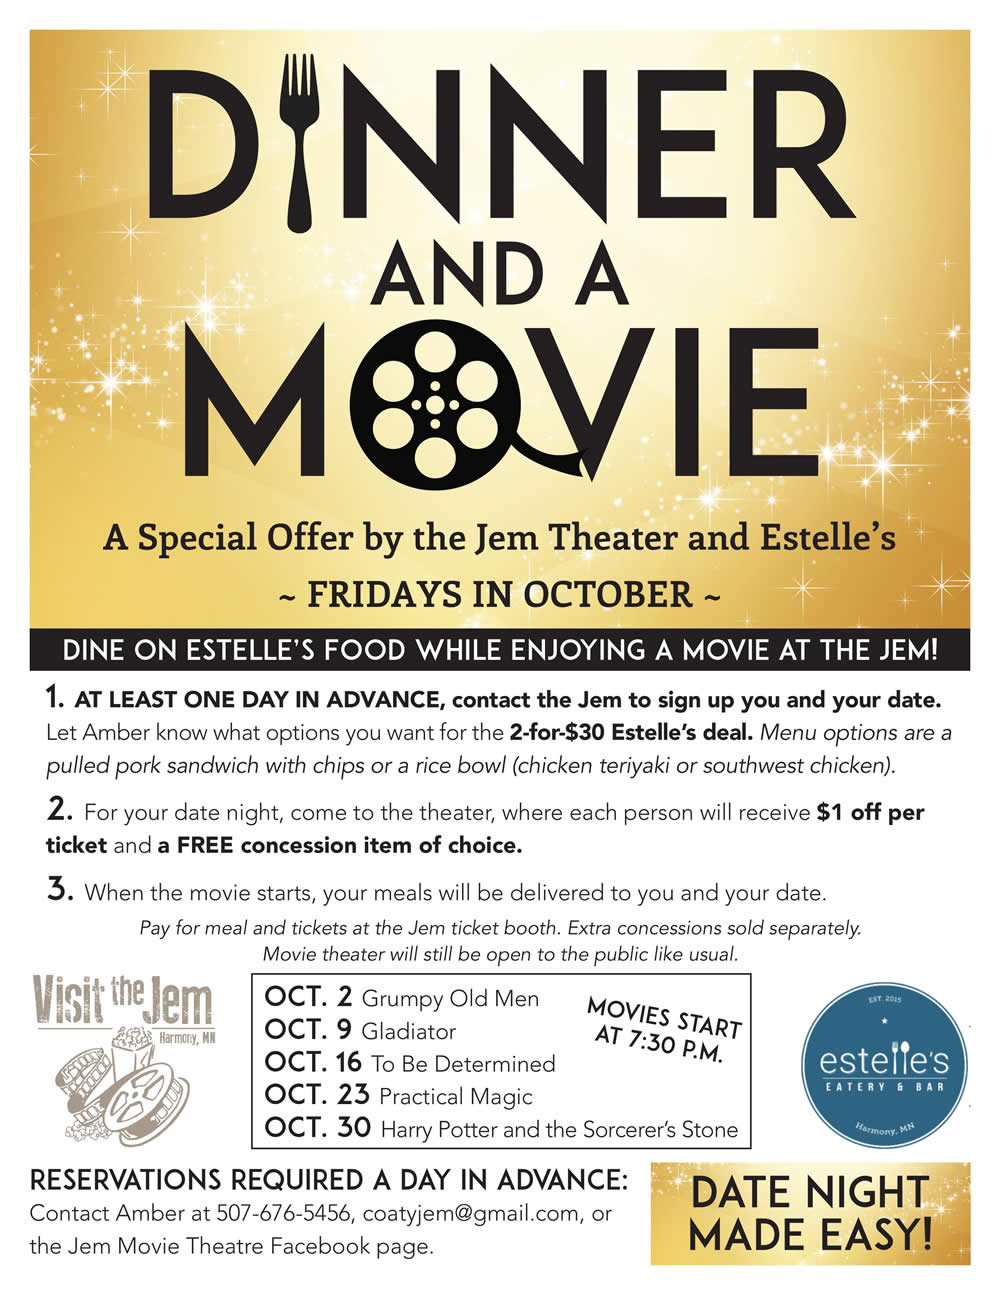 JEM Movie Theatre Harmony Minnesota - Dinner and A Movie - Estelles Eatery & Bar